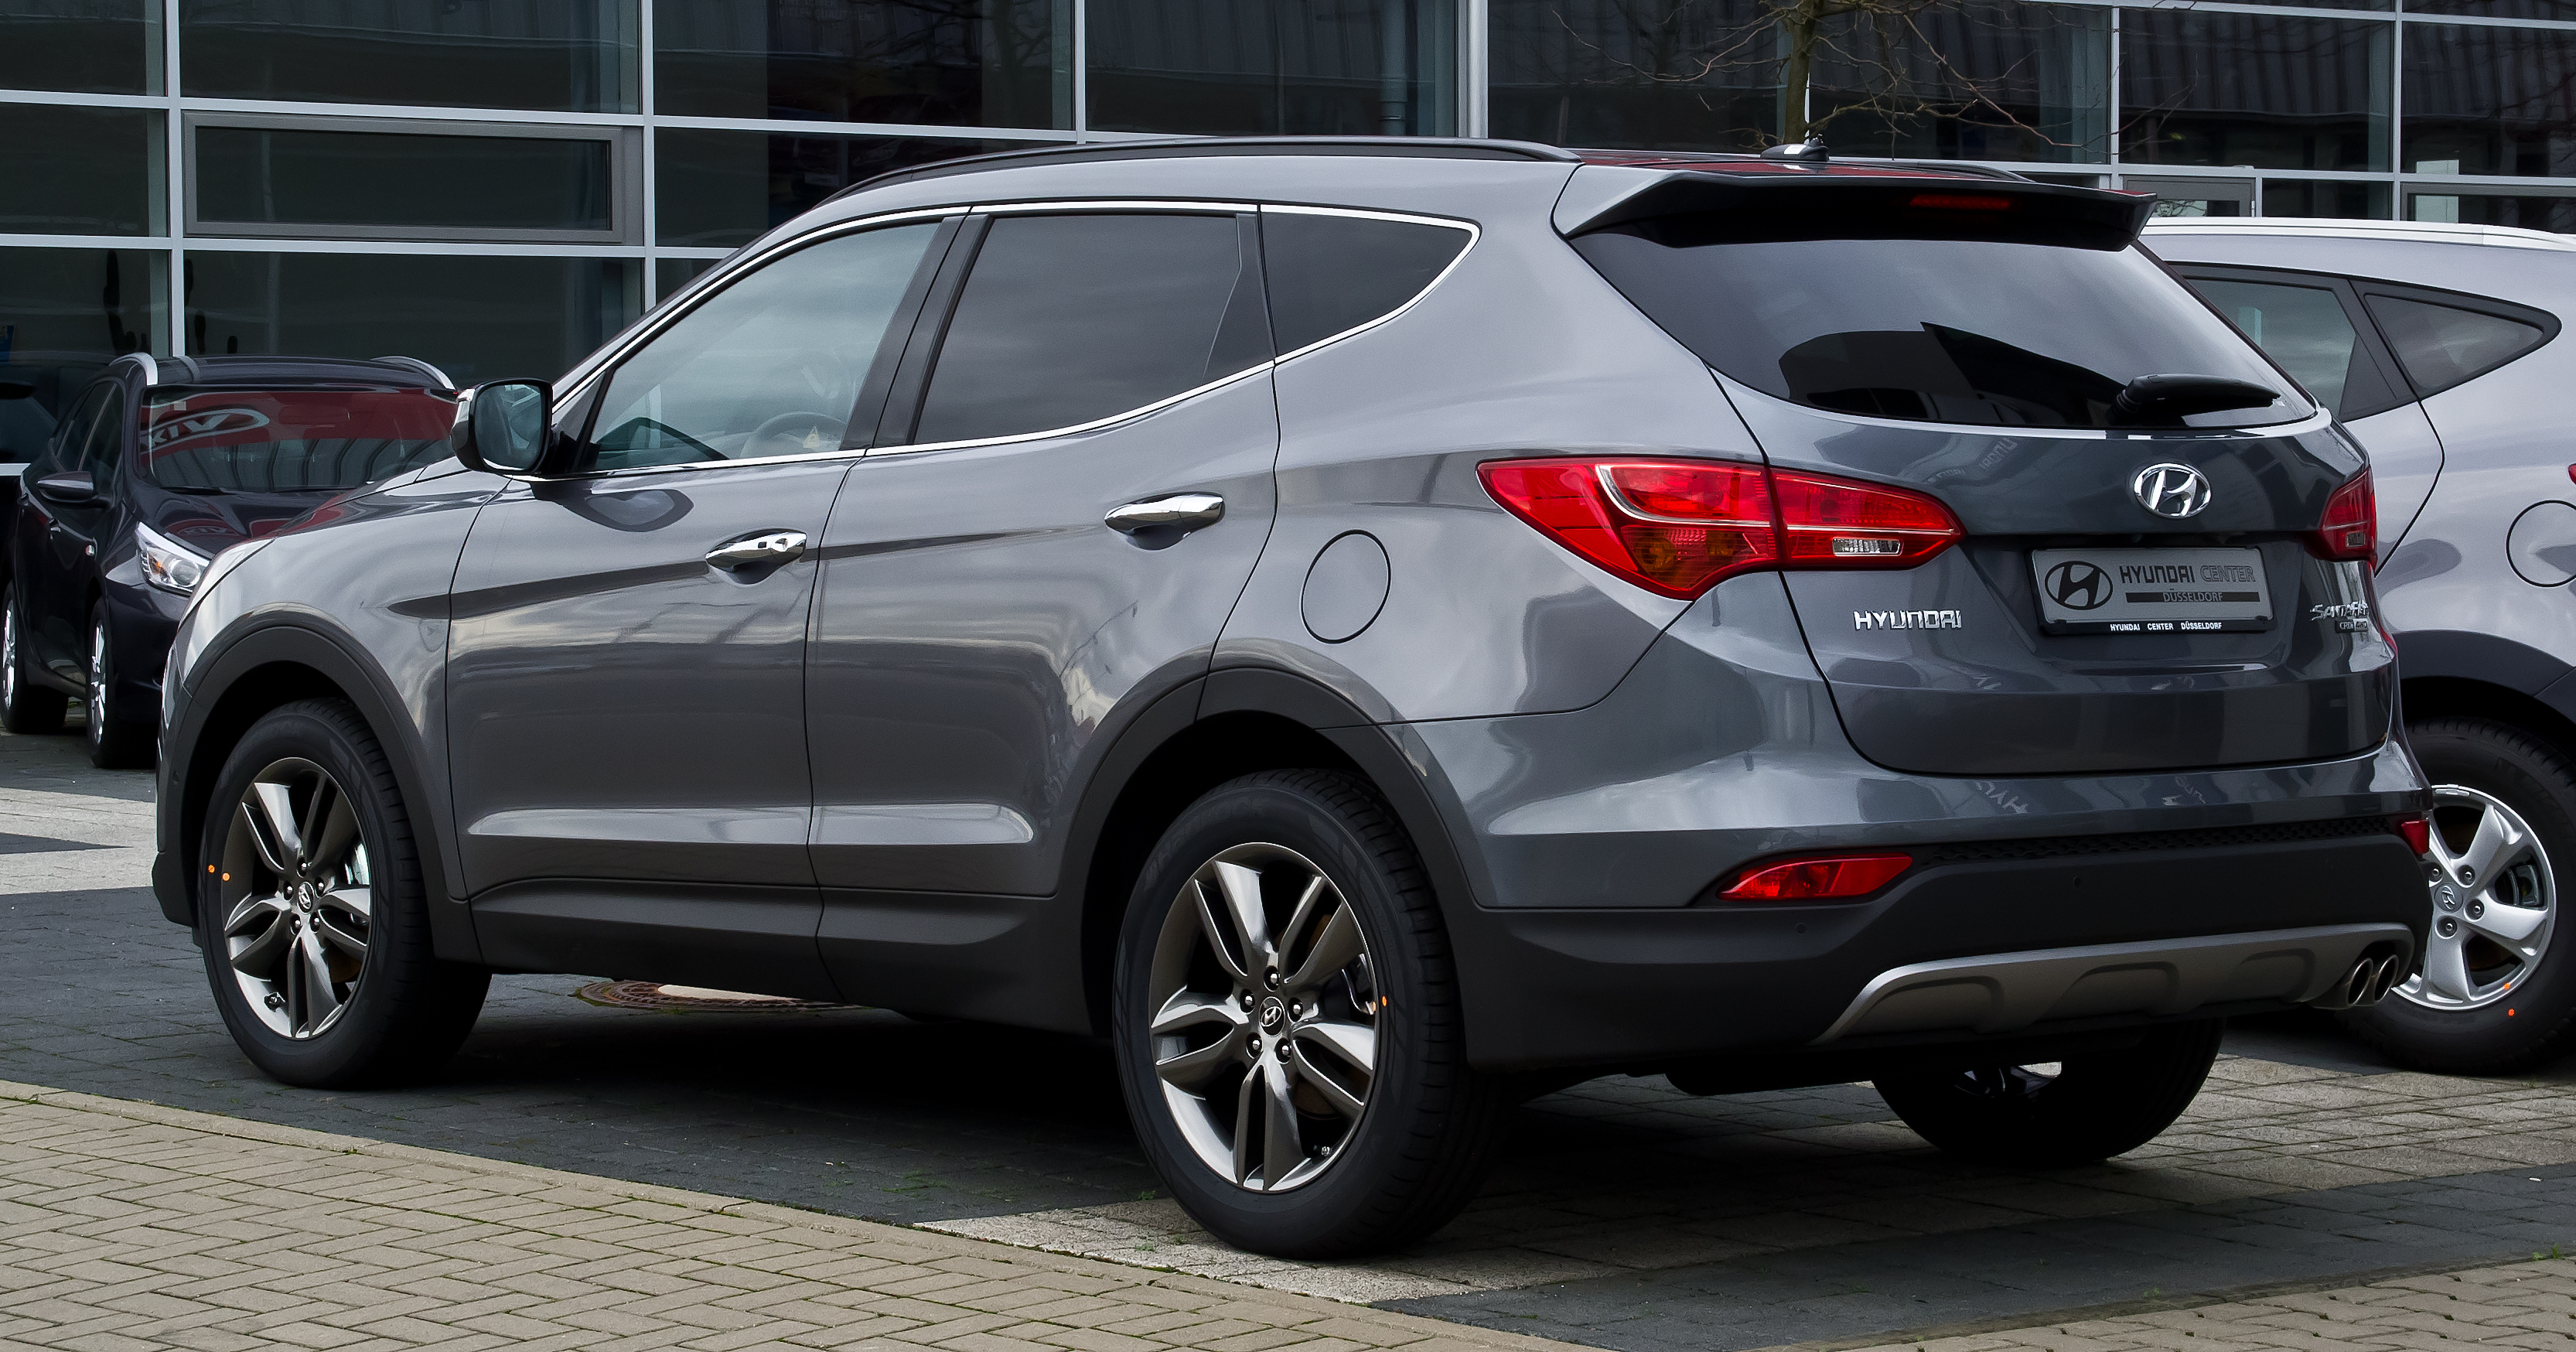 Hyundai Santa Fe 2.2 2012 photo - 1